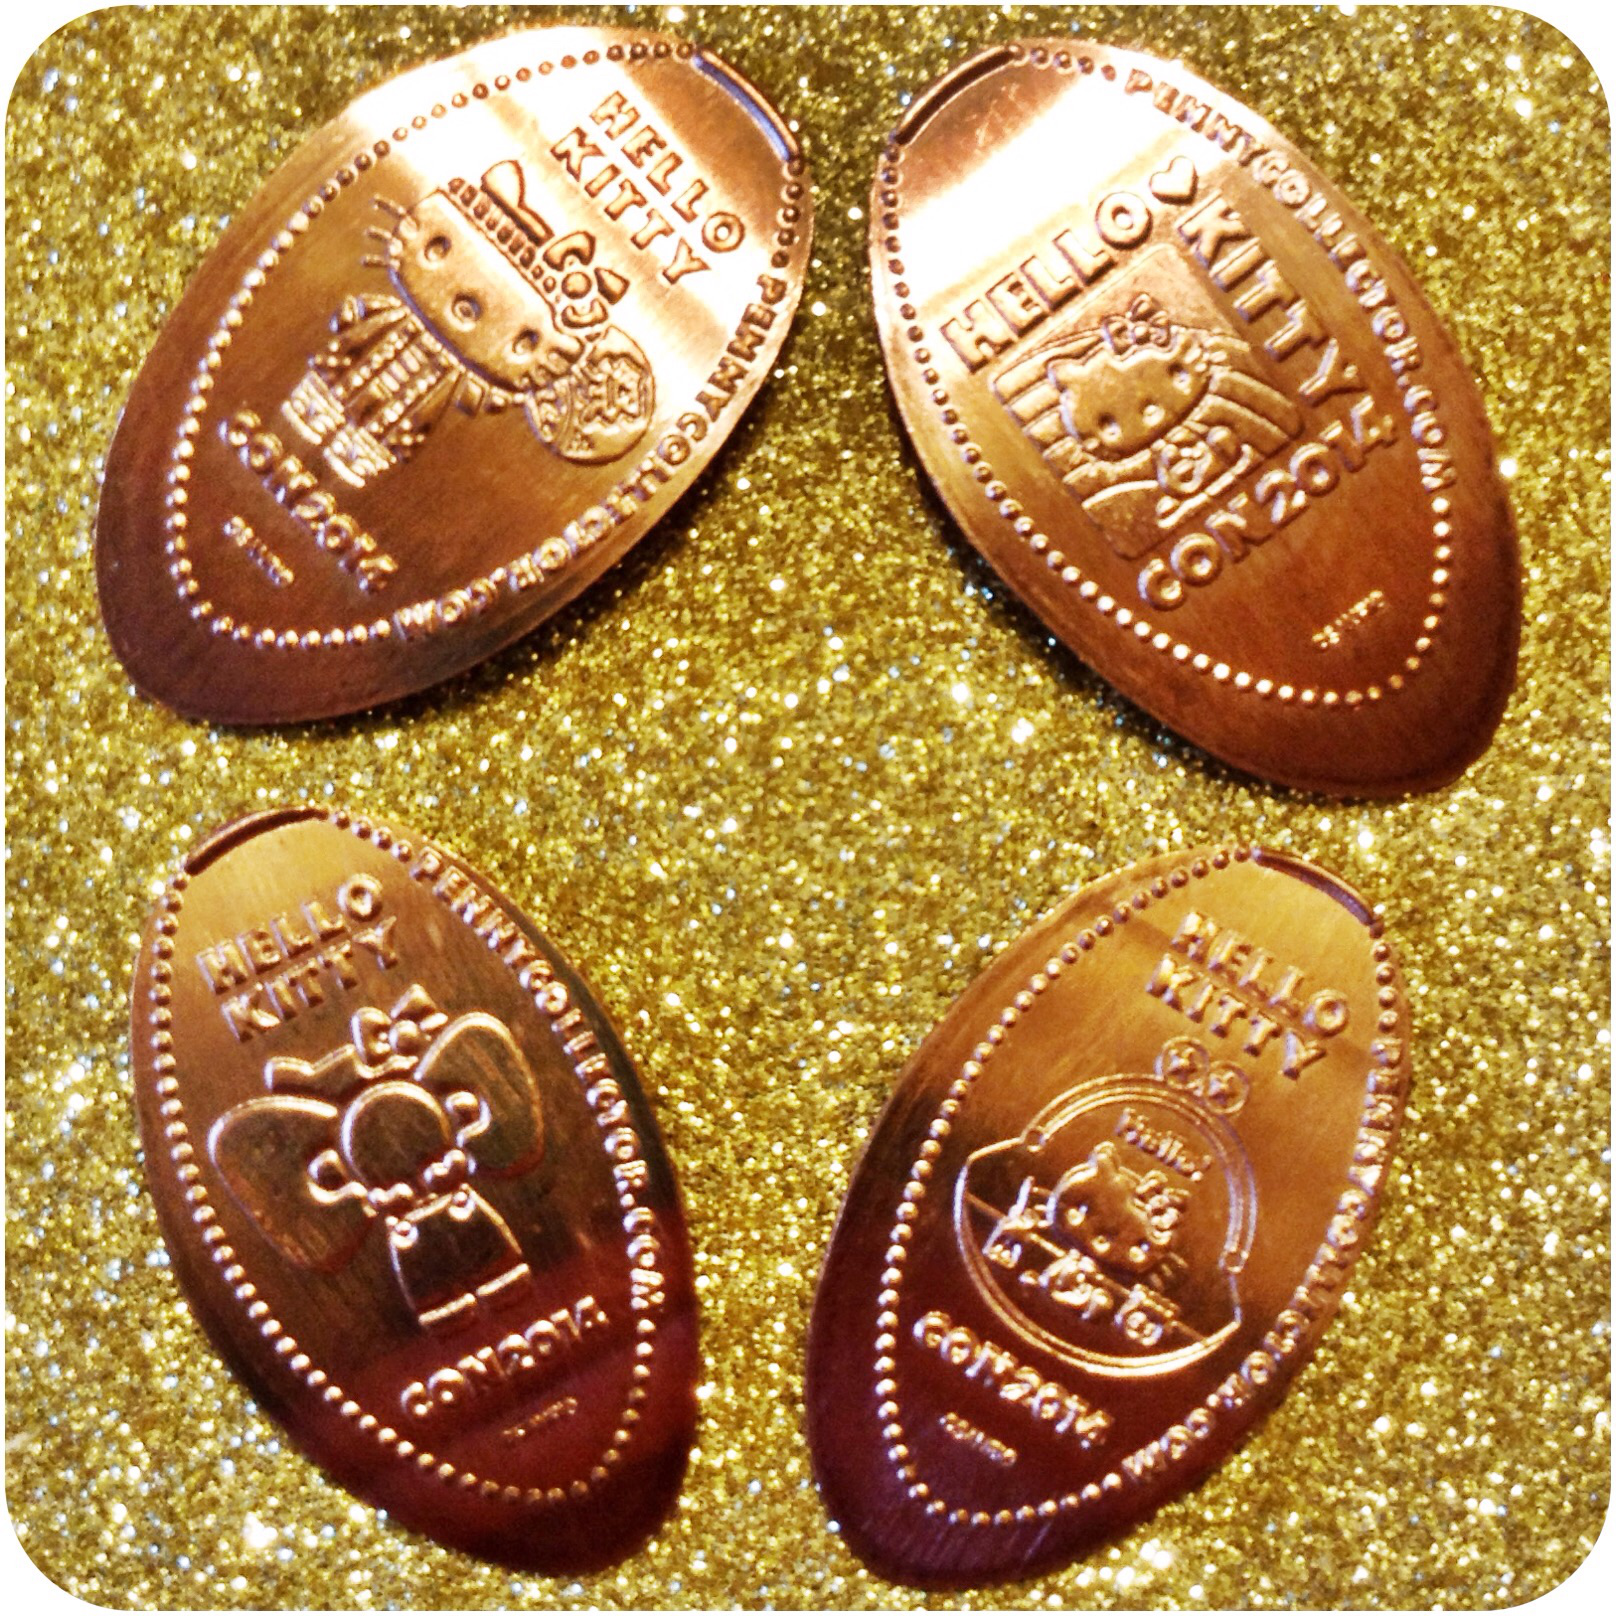 Sold Out Hello Kitty Con 2014 (40th Anniversary) Limited Edition Copper Coin Set